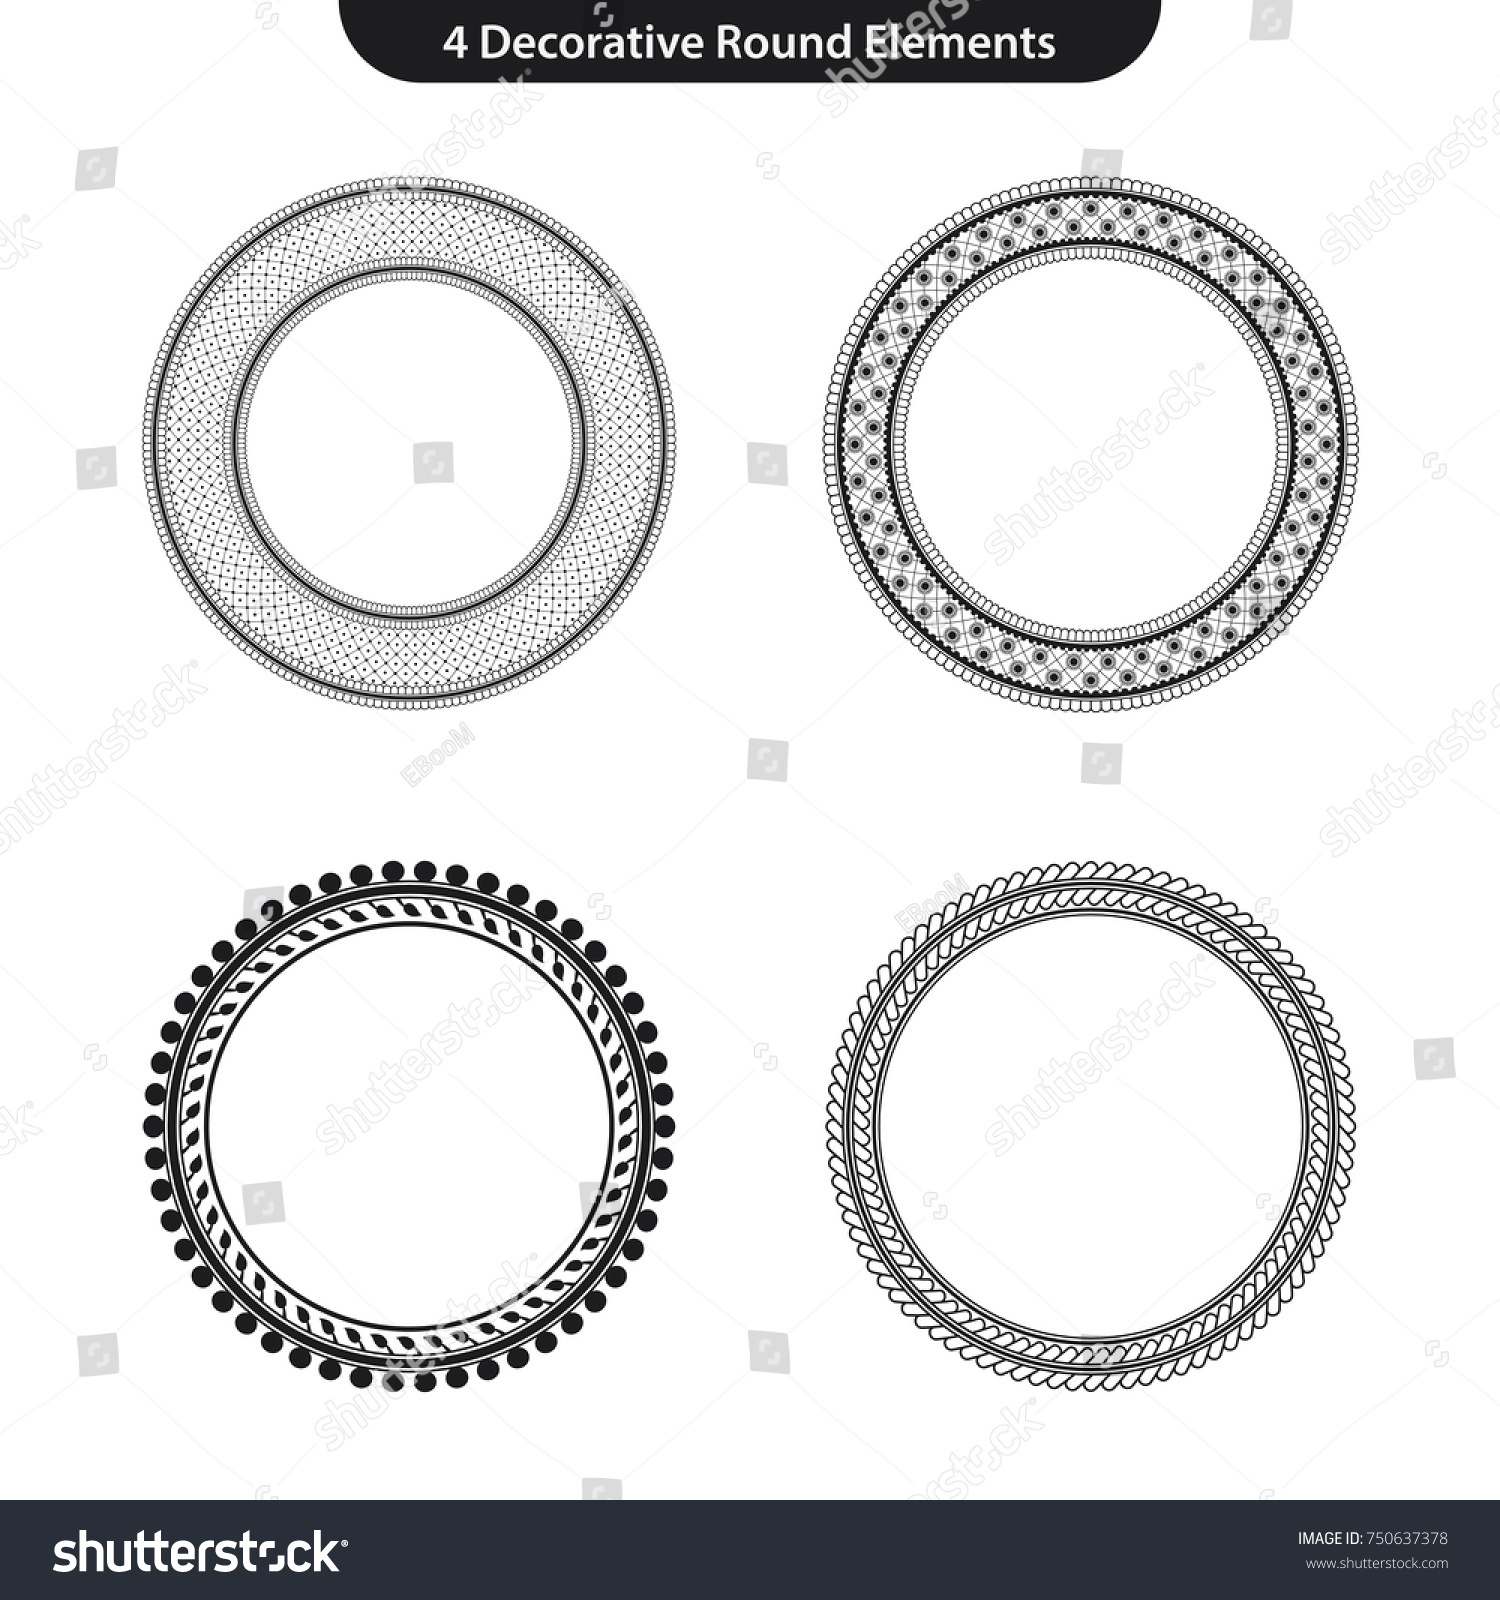 4 decorative round vector elements circle stock vector royalty free